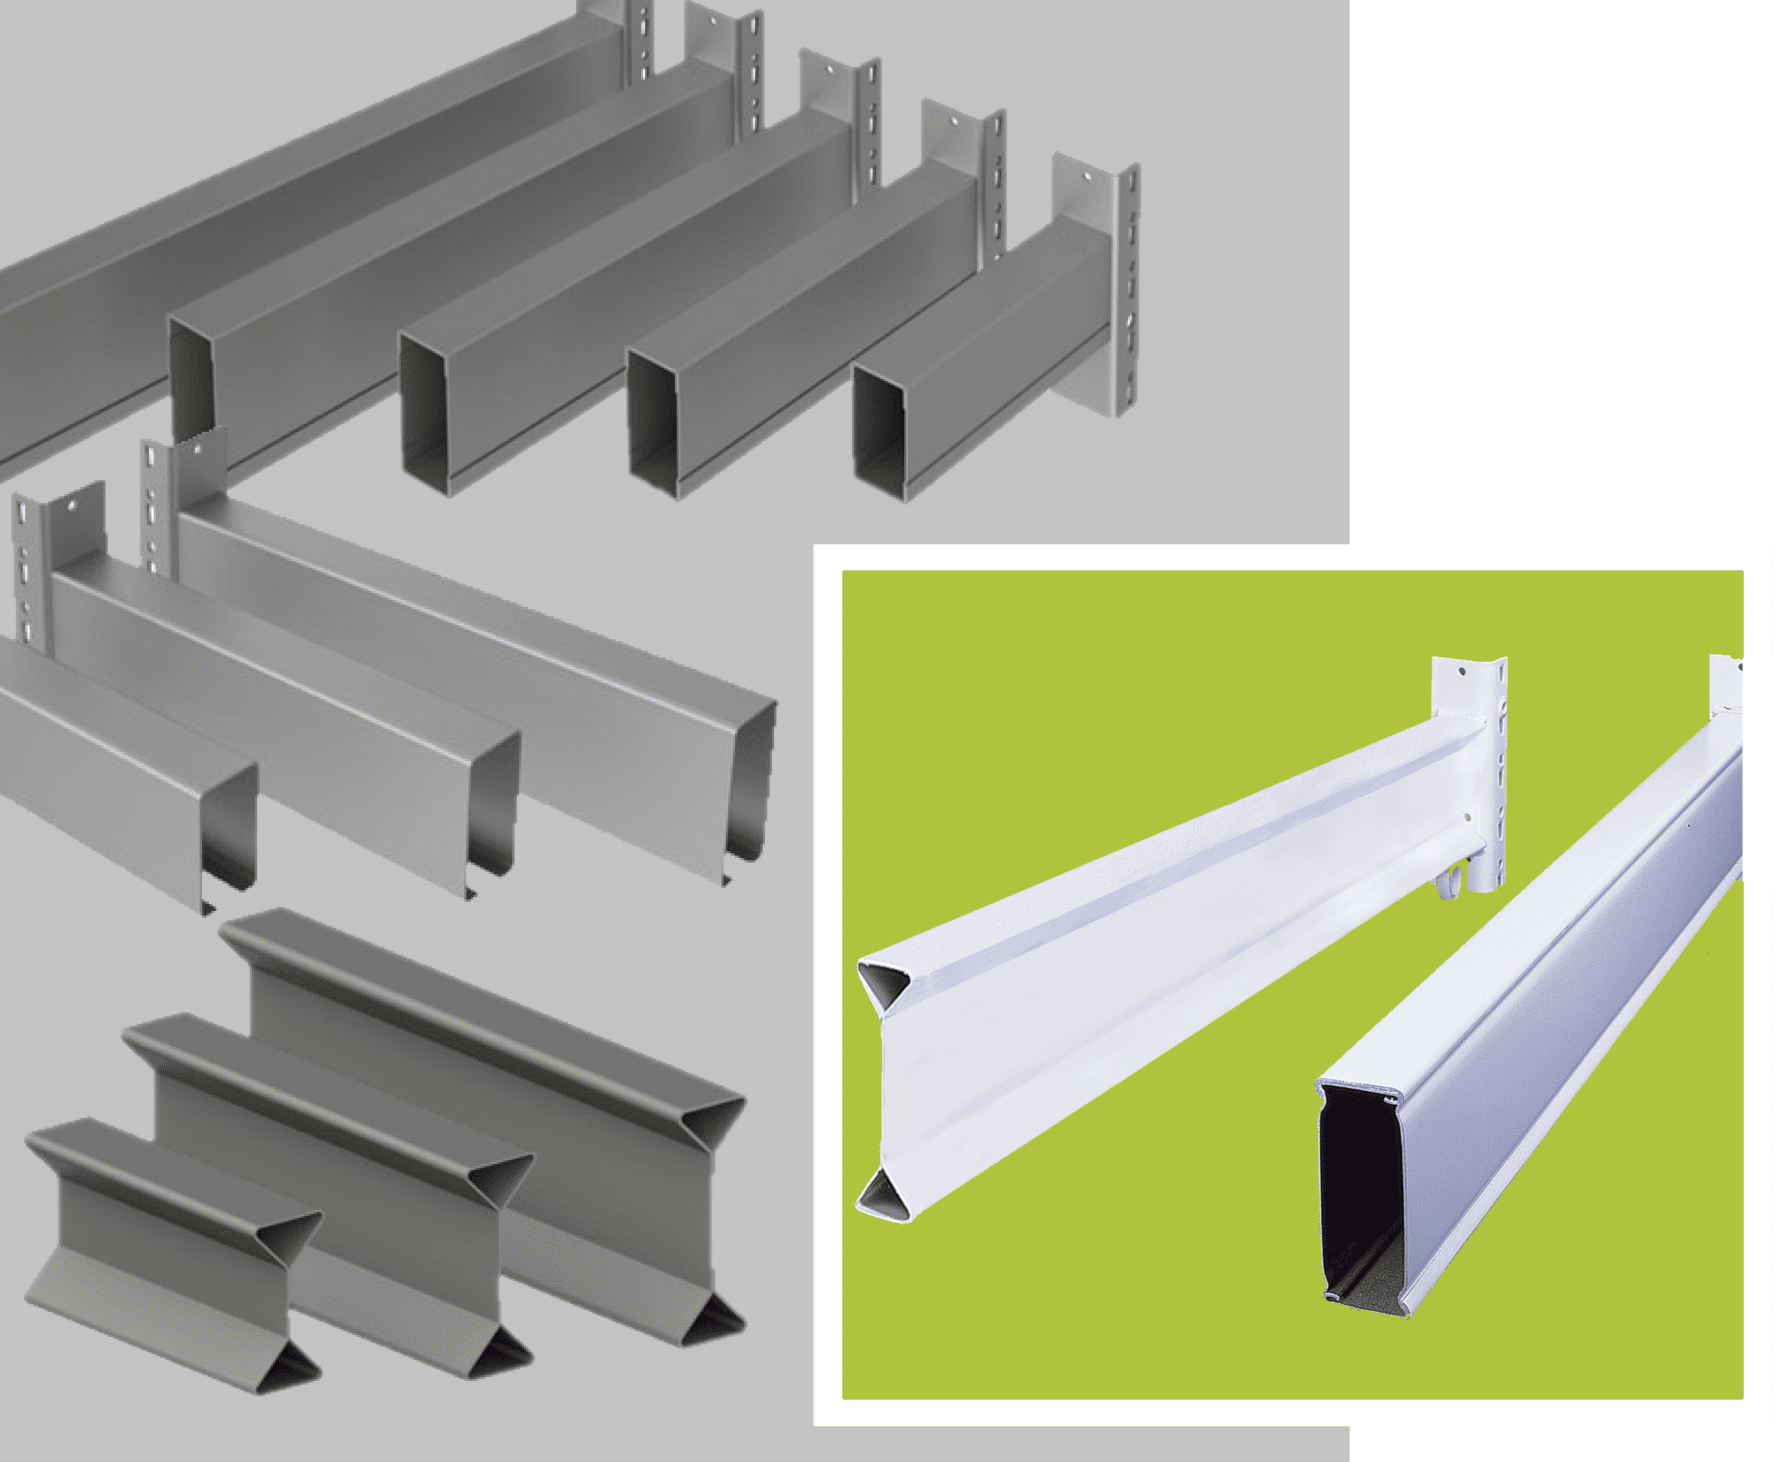 Pallet Racking Beam structures